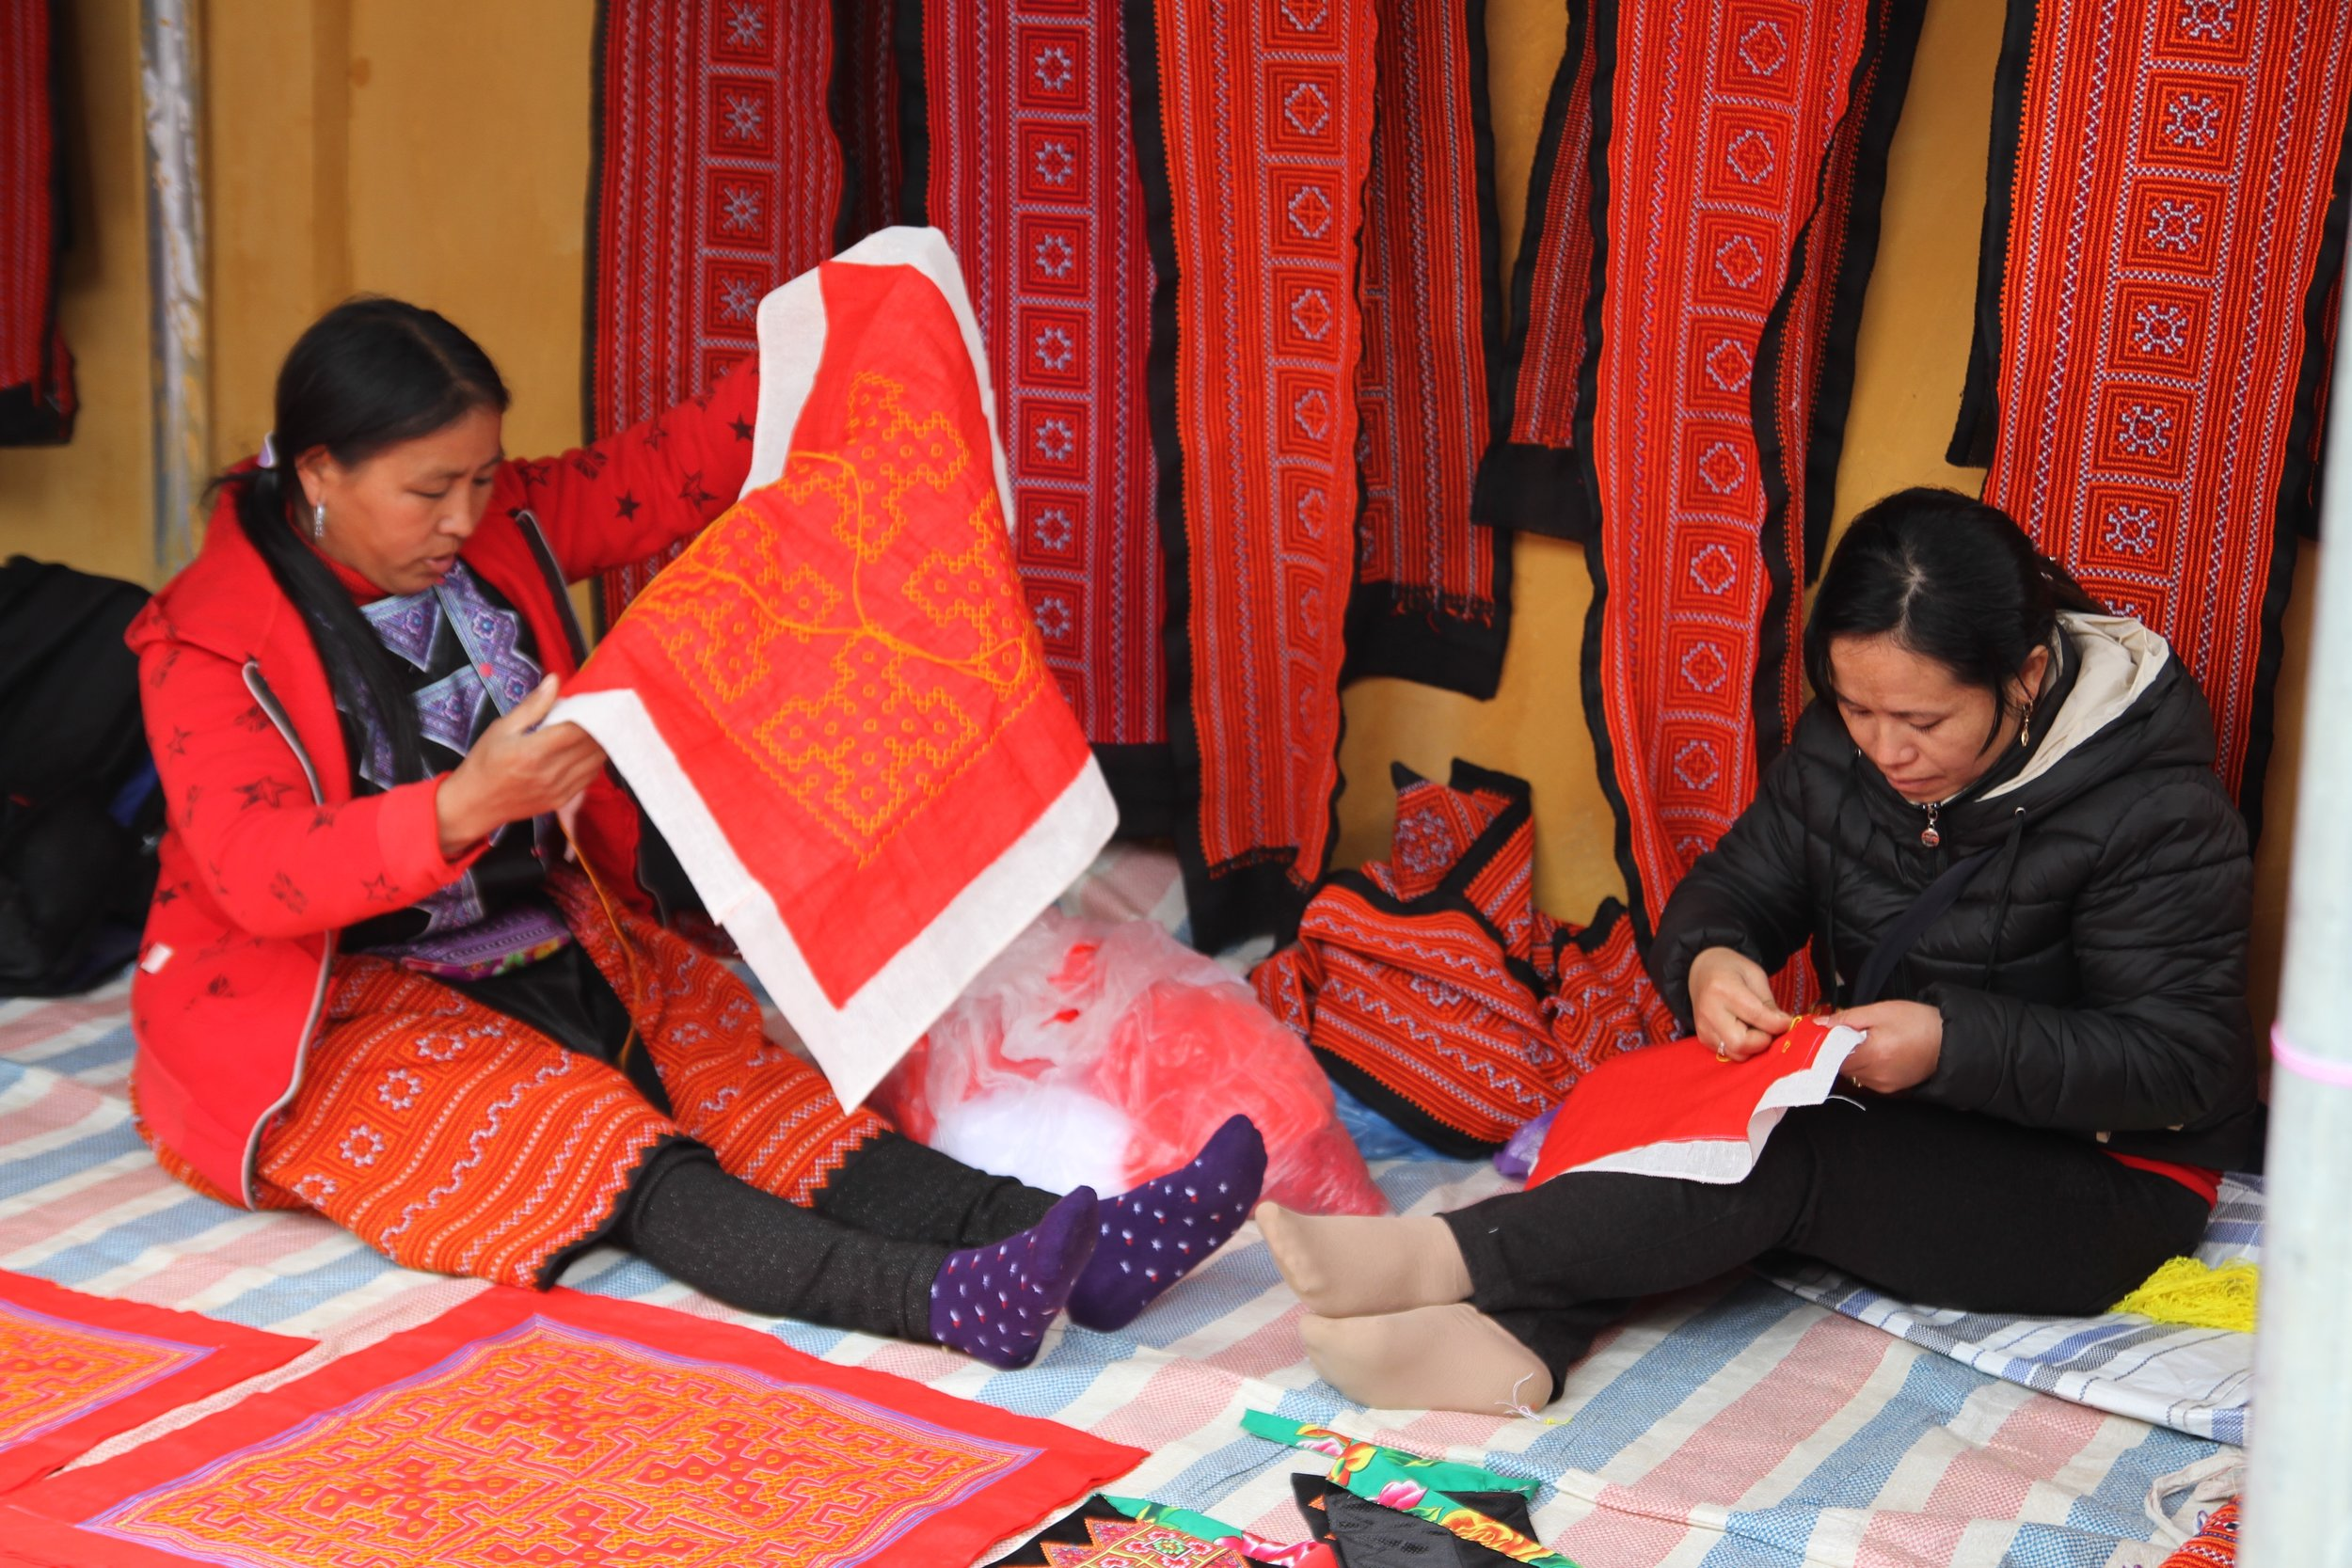 Women embroider and sell at the market, Loi Chai